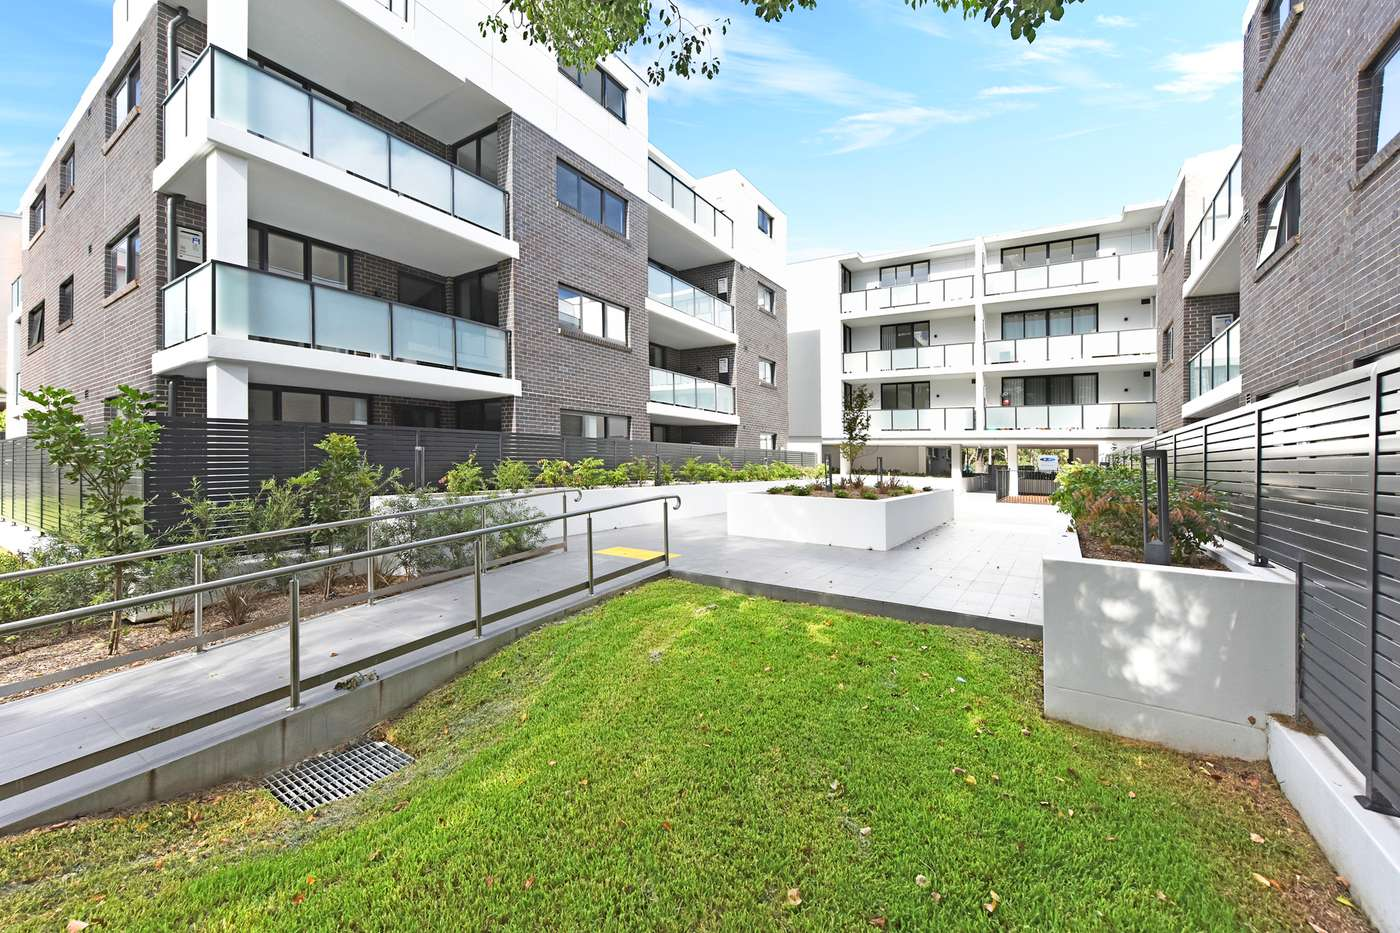 Main view of Homely apartment listing, 77-87 Fifth Avenue, Campsie, NSW 2194